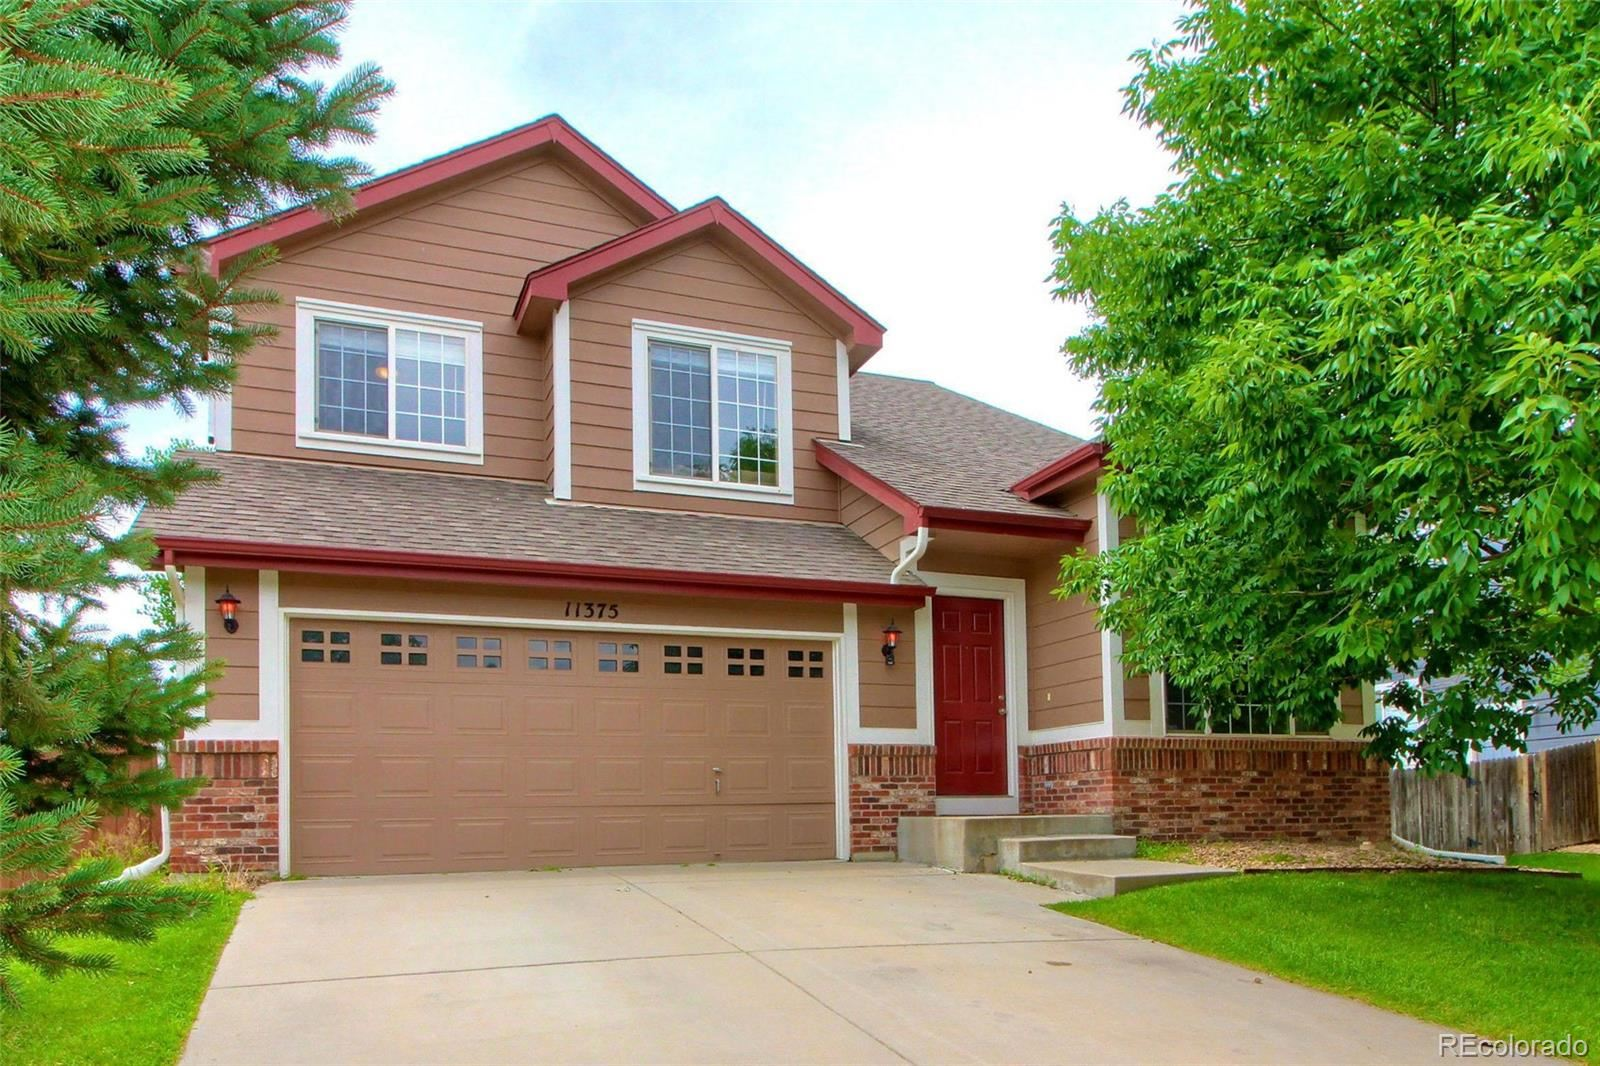 11375  Daisy Court, Firestone, CO 80504 - #: 2141703